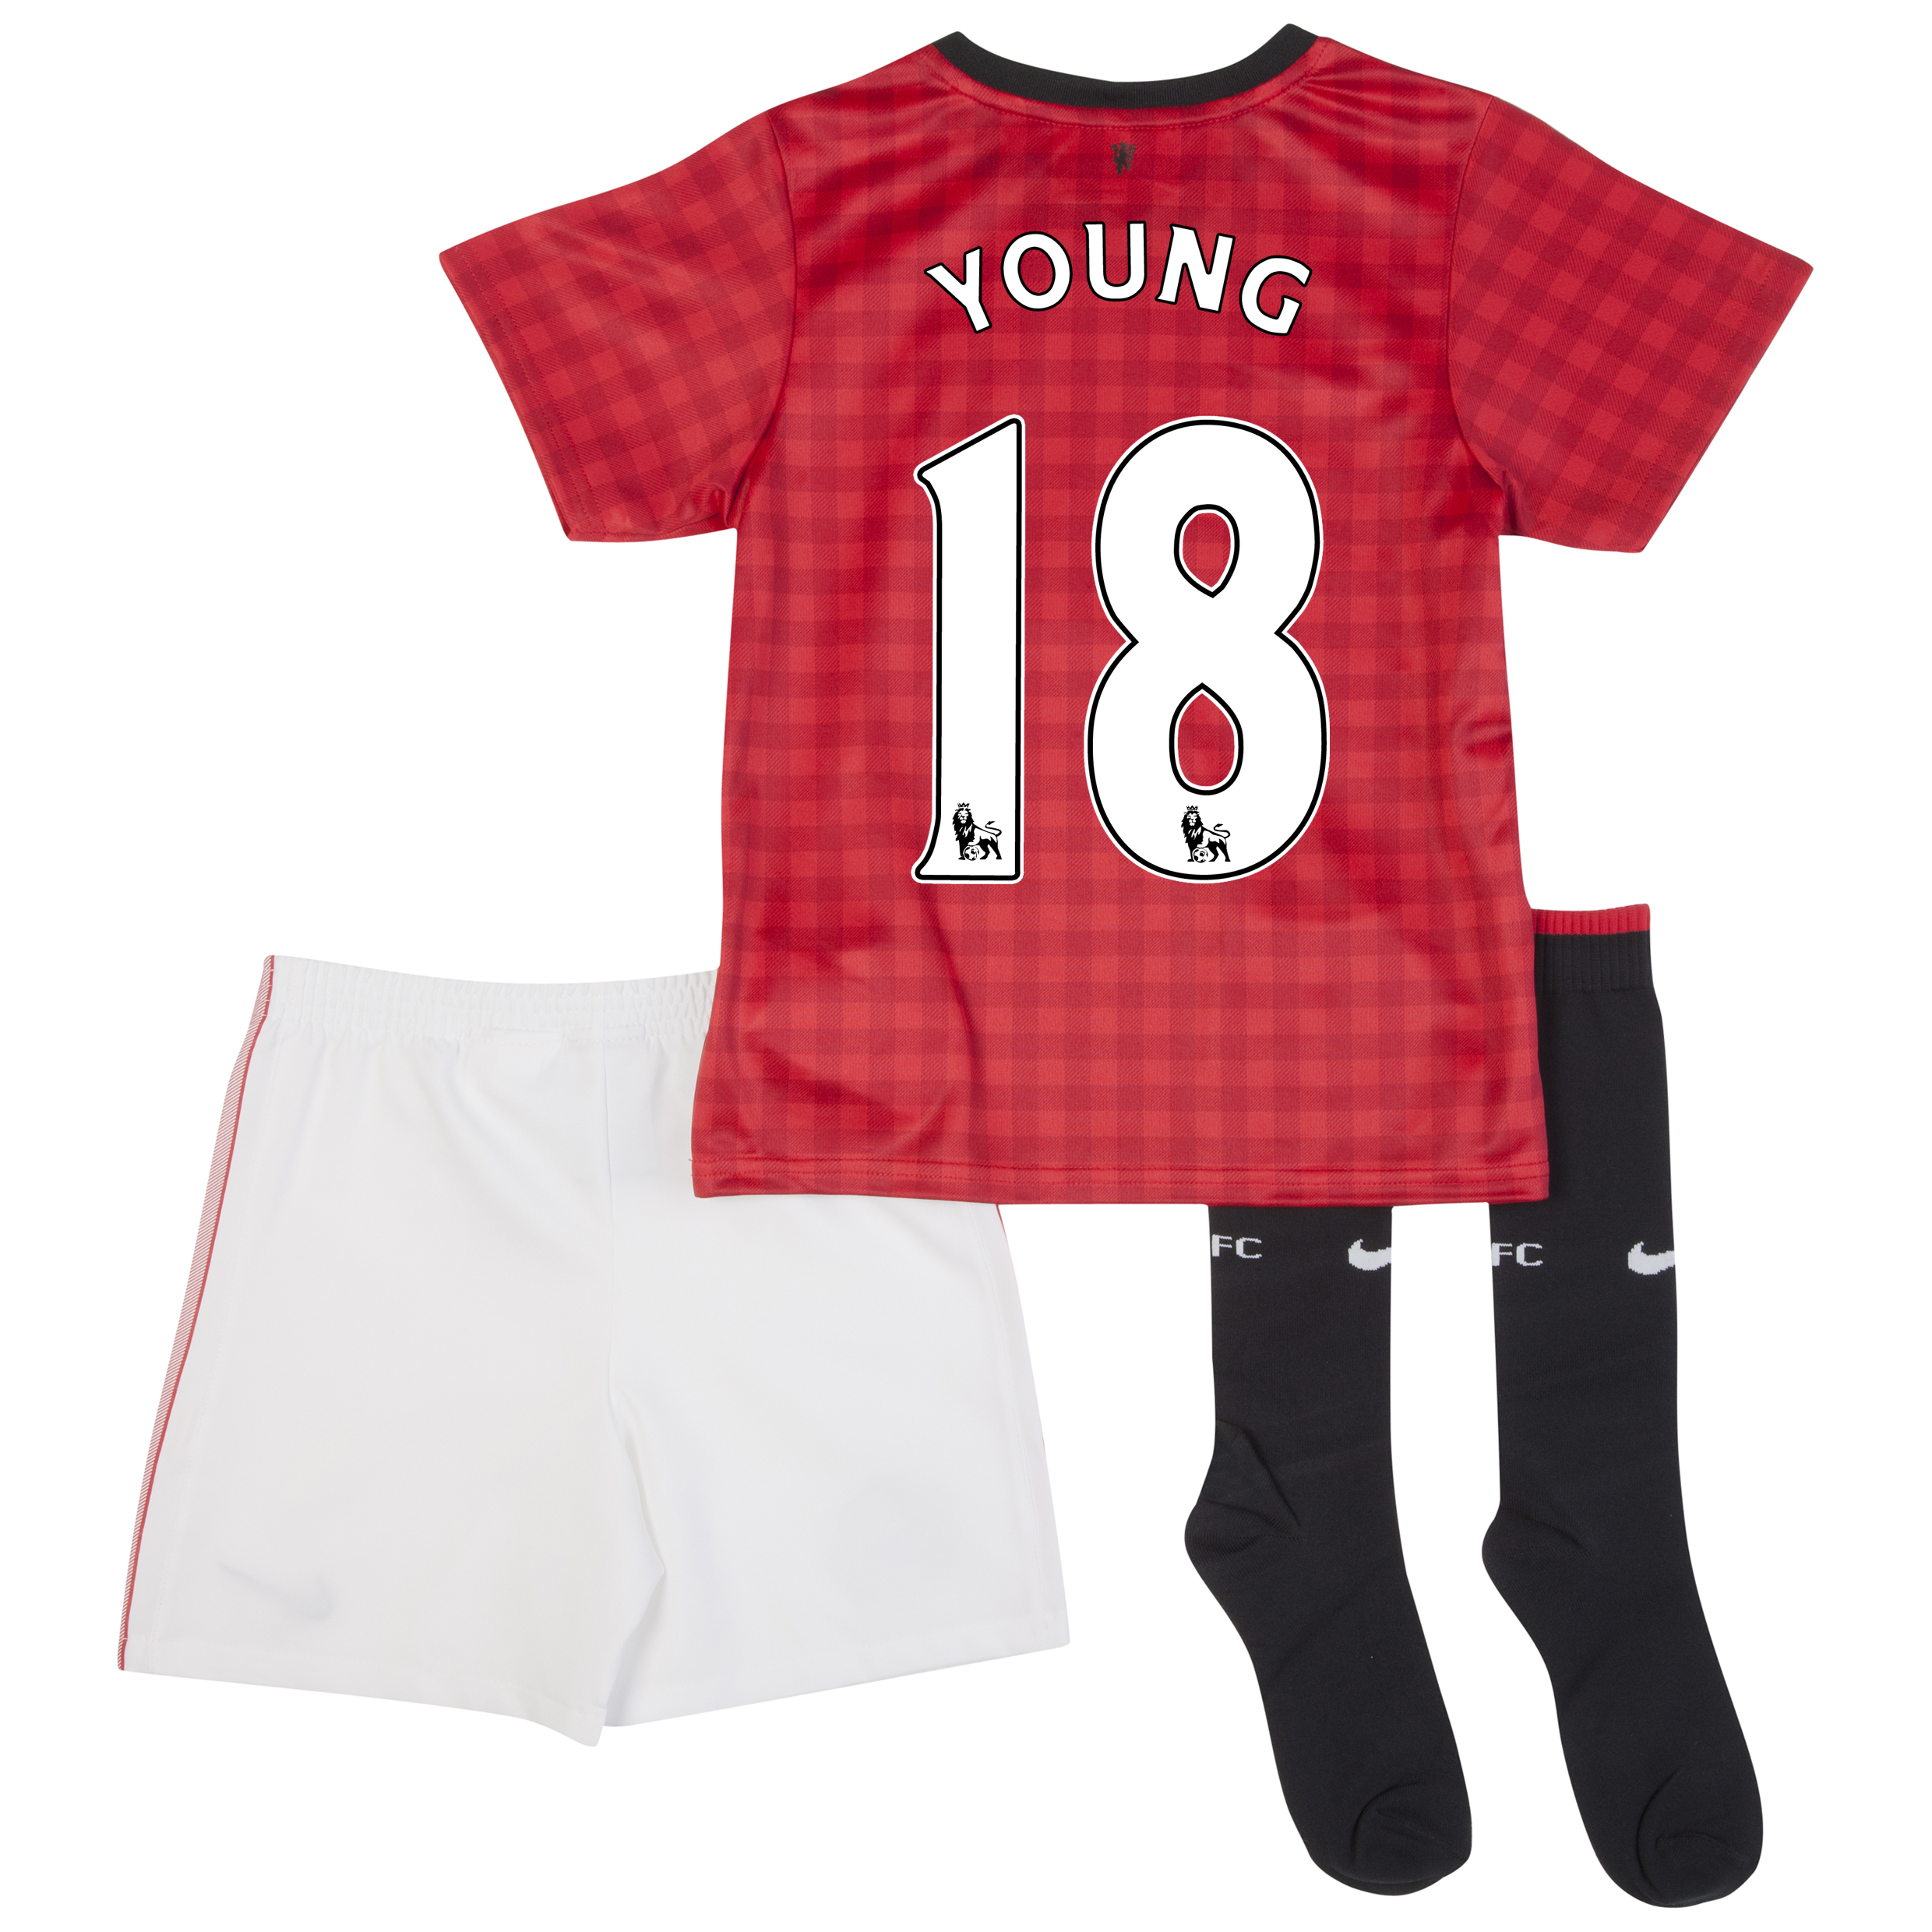 Manchester United Home Kit 2012/13 -  Little Boys with Young 18 printing